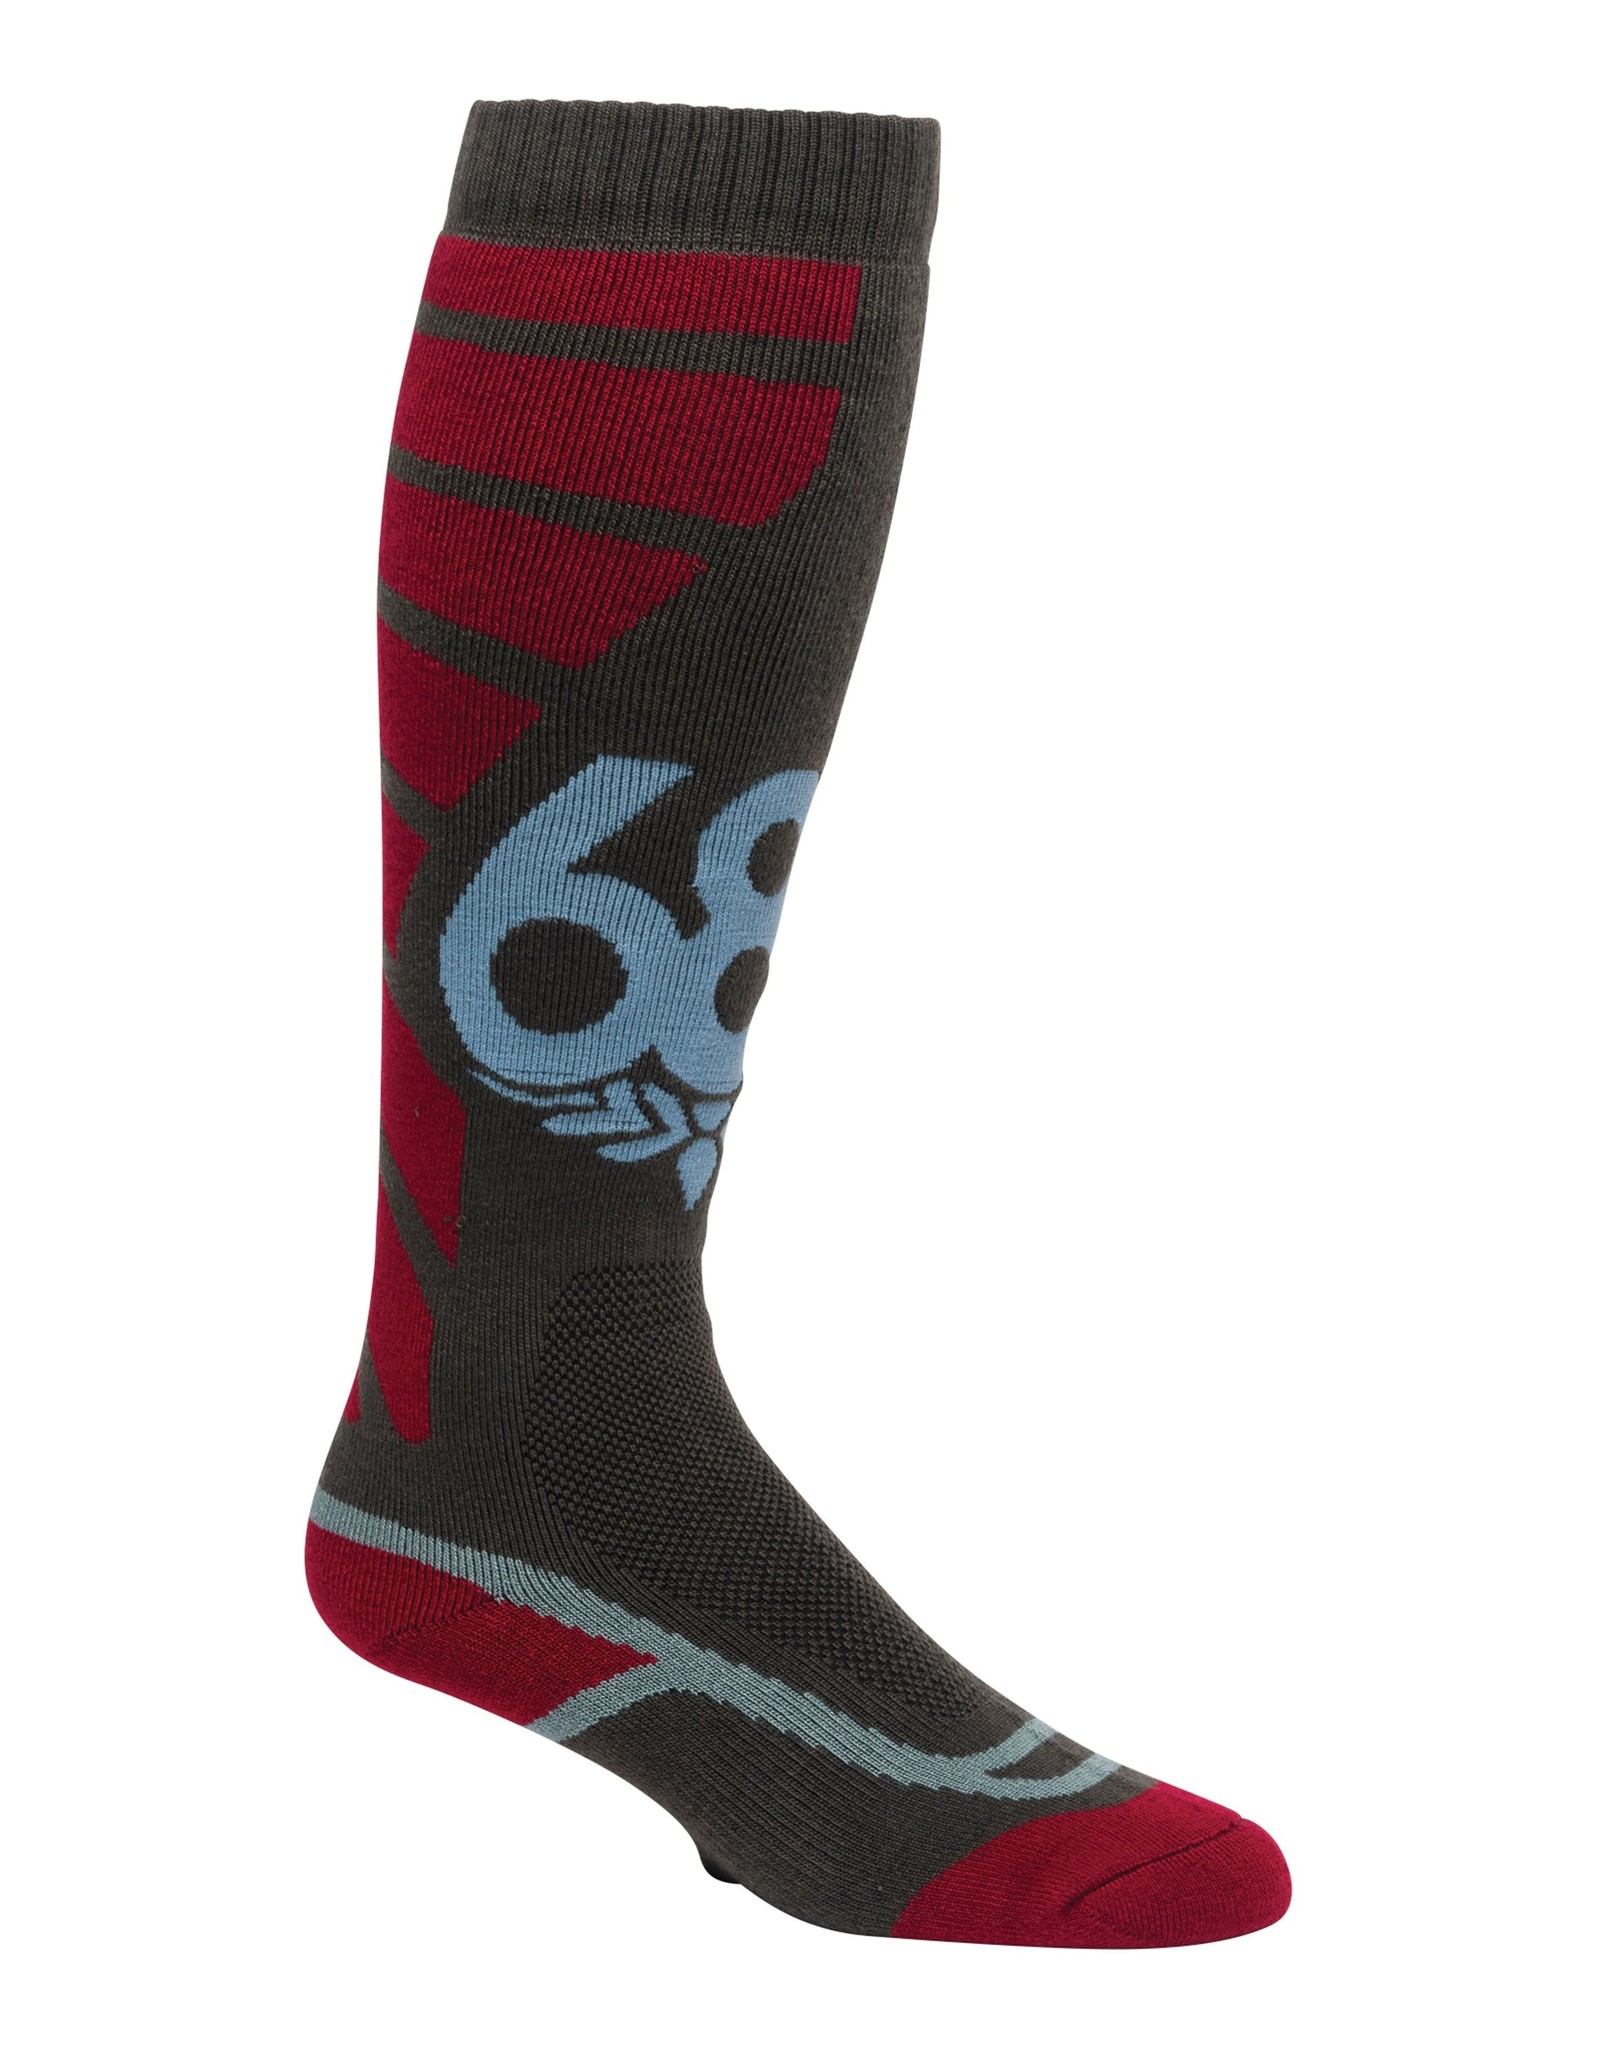 686 686 - STRIKE 3-PACK SOCKS - ASSORTED